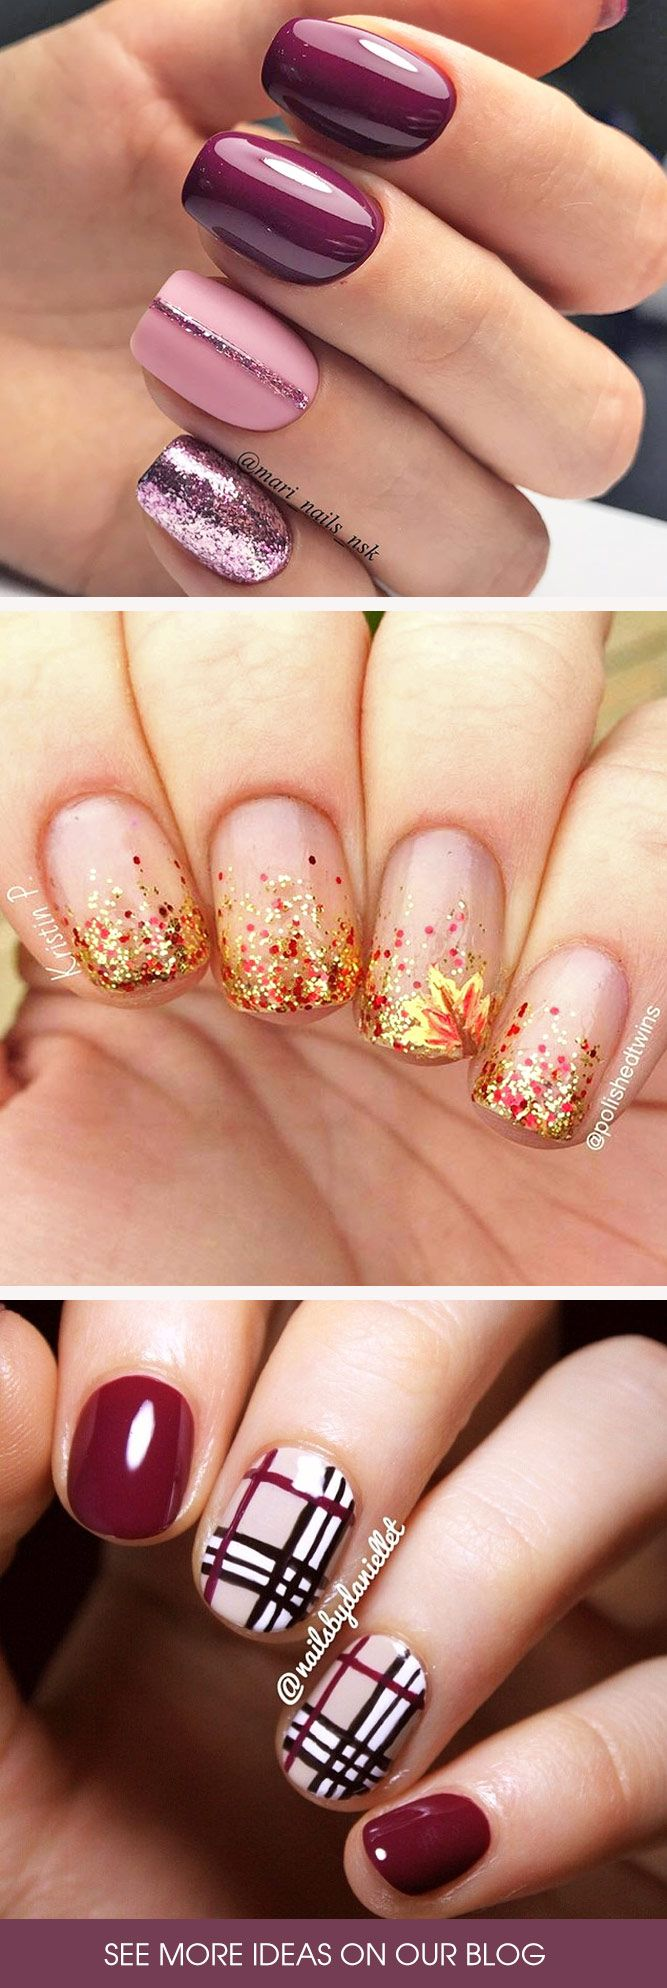 45 must try fall nail designs and ideas | makeup, manicure and